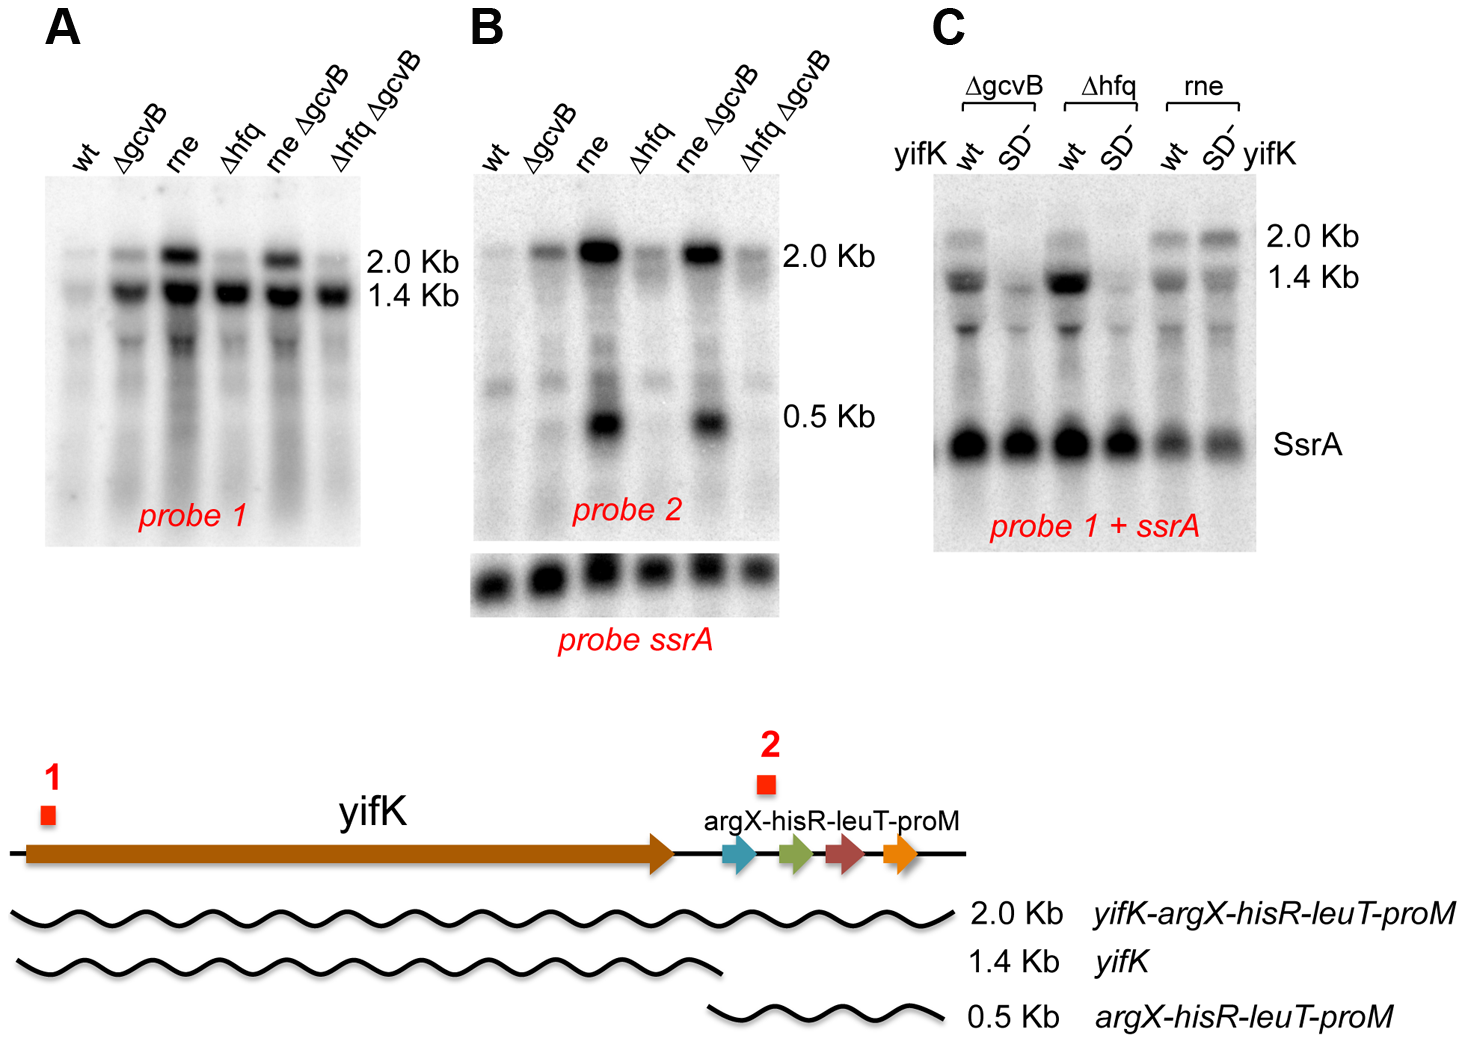 Northern blot analysis of <i>yifK</i> transcription.